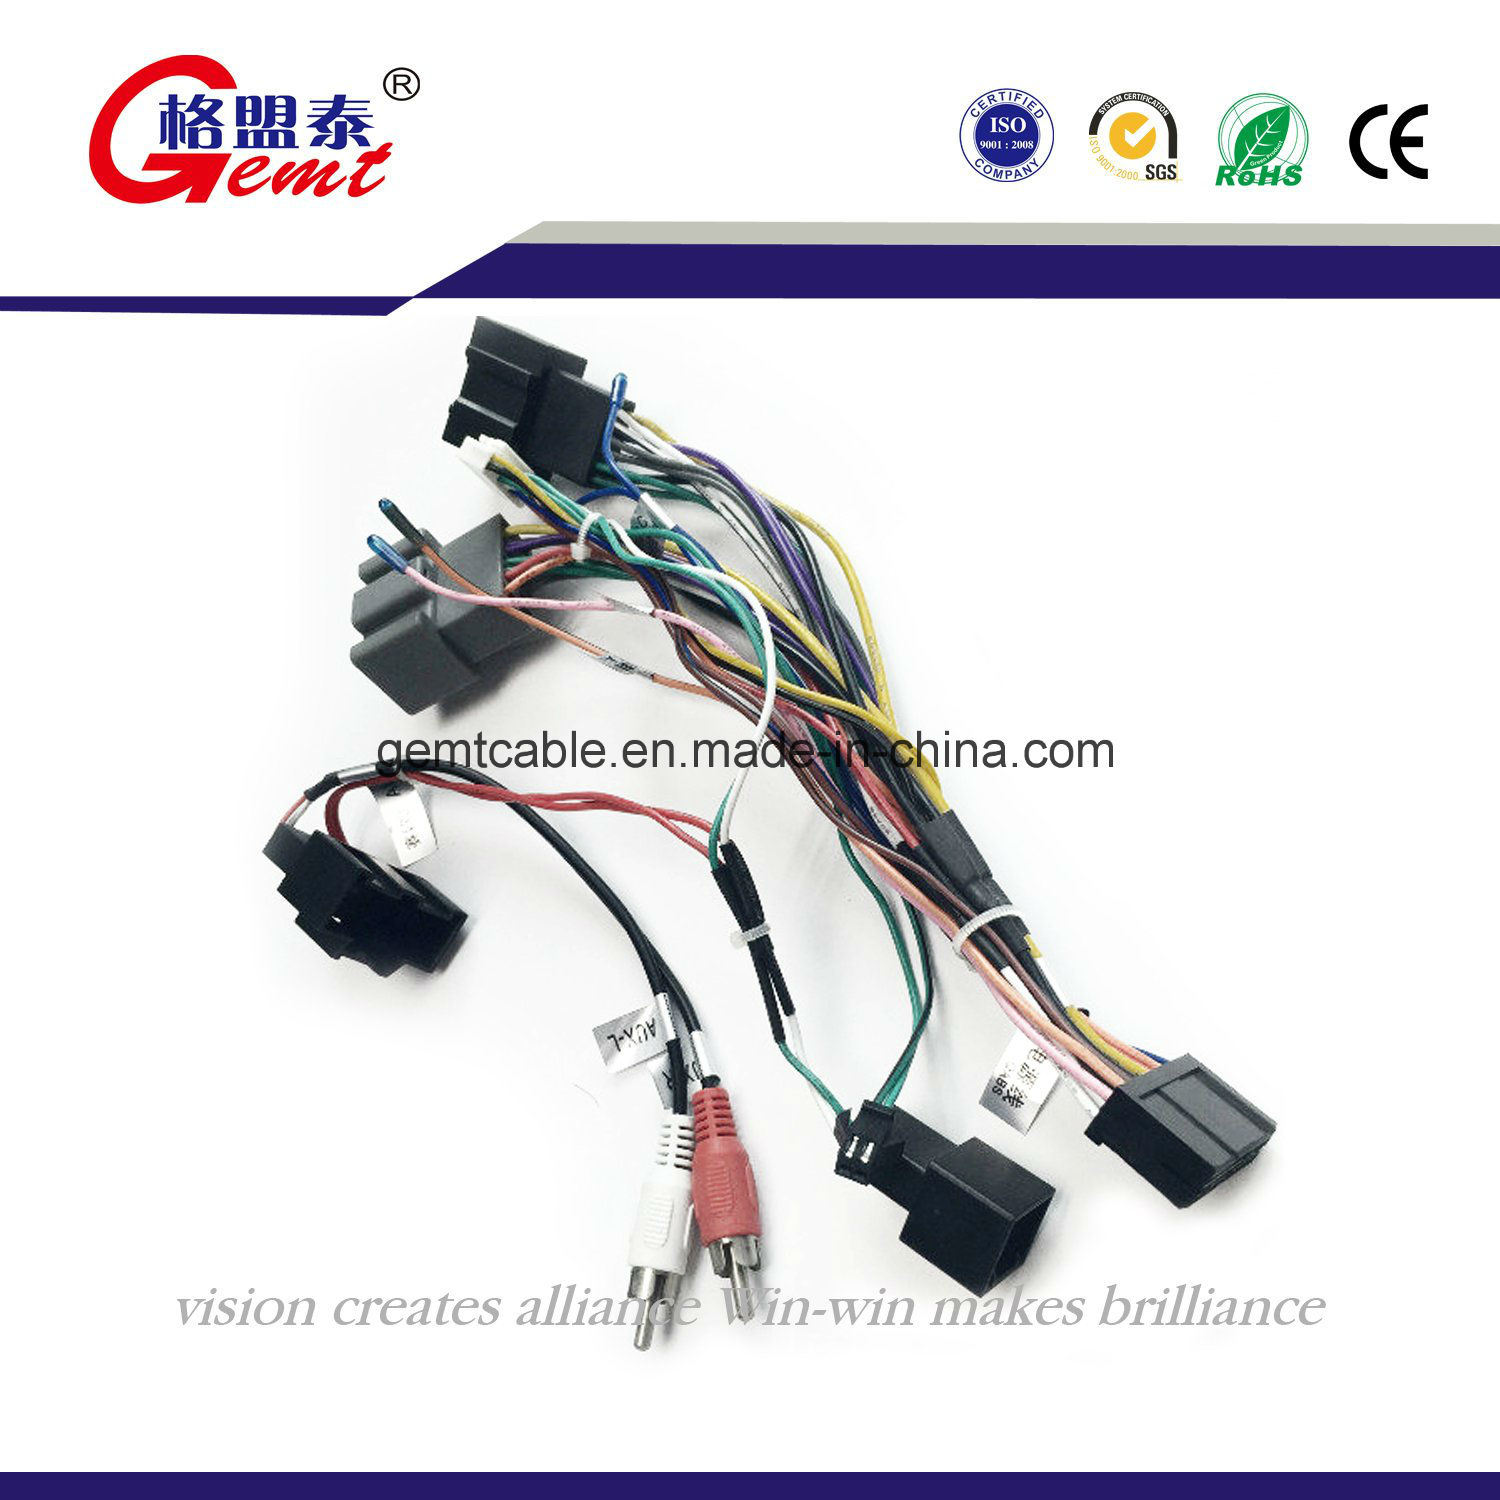 hight resolution of china high quality custom vw audi bmw stereo radio automotive wire harness china wire harness wiring harness